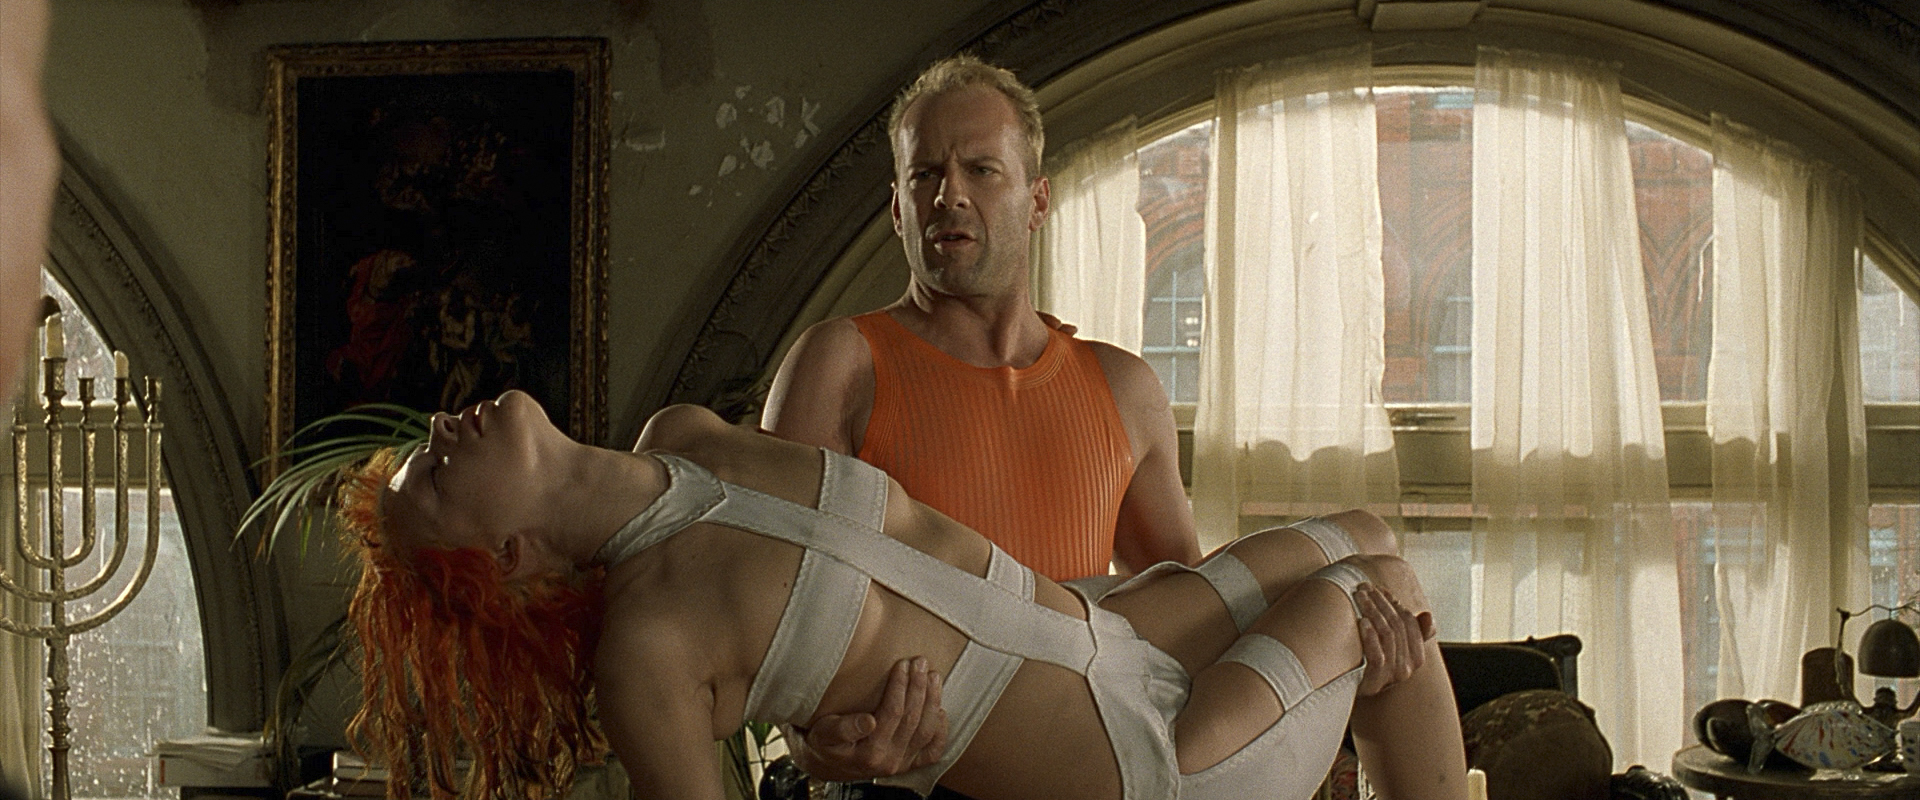 Bruce Willis in a sleeveless orange top holds Milla Jovovich in a bandage dress in The Fifth Element